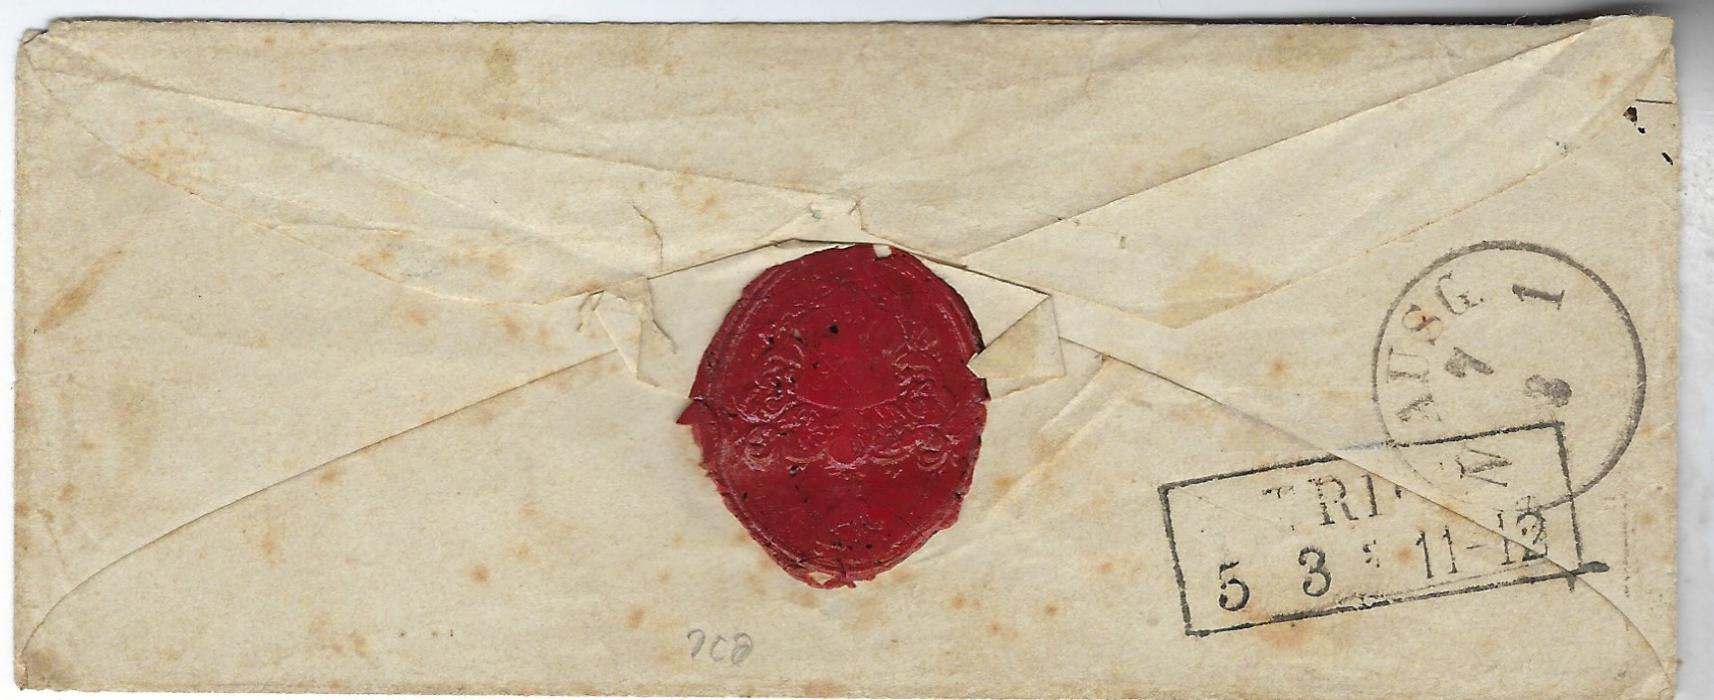 Luxembourg 1857 ( Mars) cover to Erfurt, Germany franked 1852 1 Sgr. dull red in horizontal strip of three, left hand stamp touched bottom margin otherwise good to large, cancelled and tied by grill cancel, cds alongside, framed PD at base, arrival backstamp; some slight ageing to envelope, scarce.